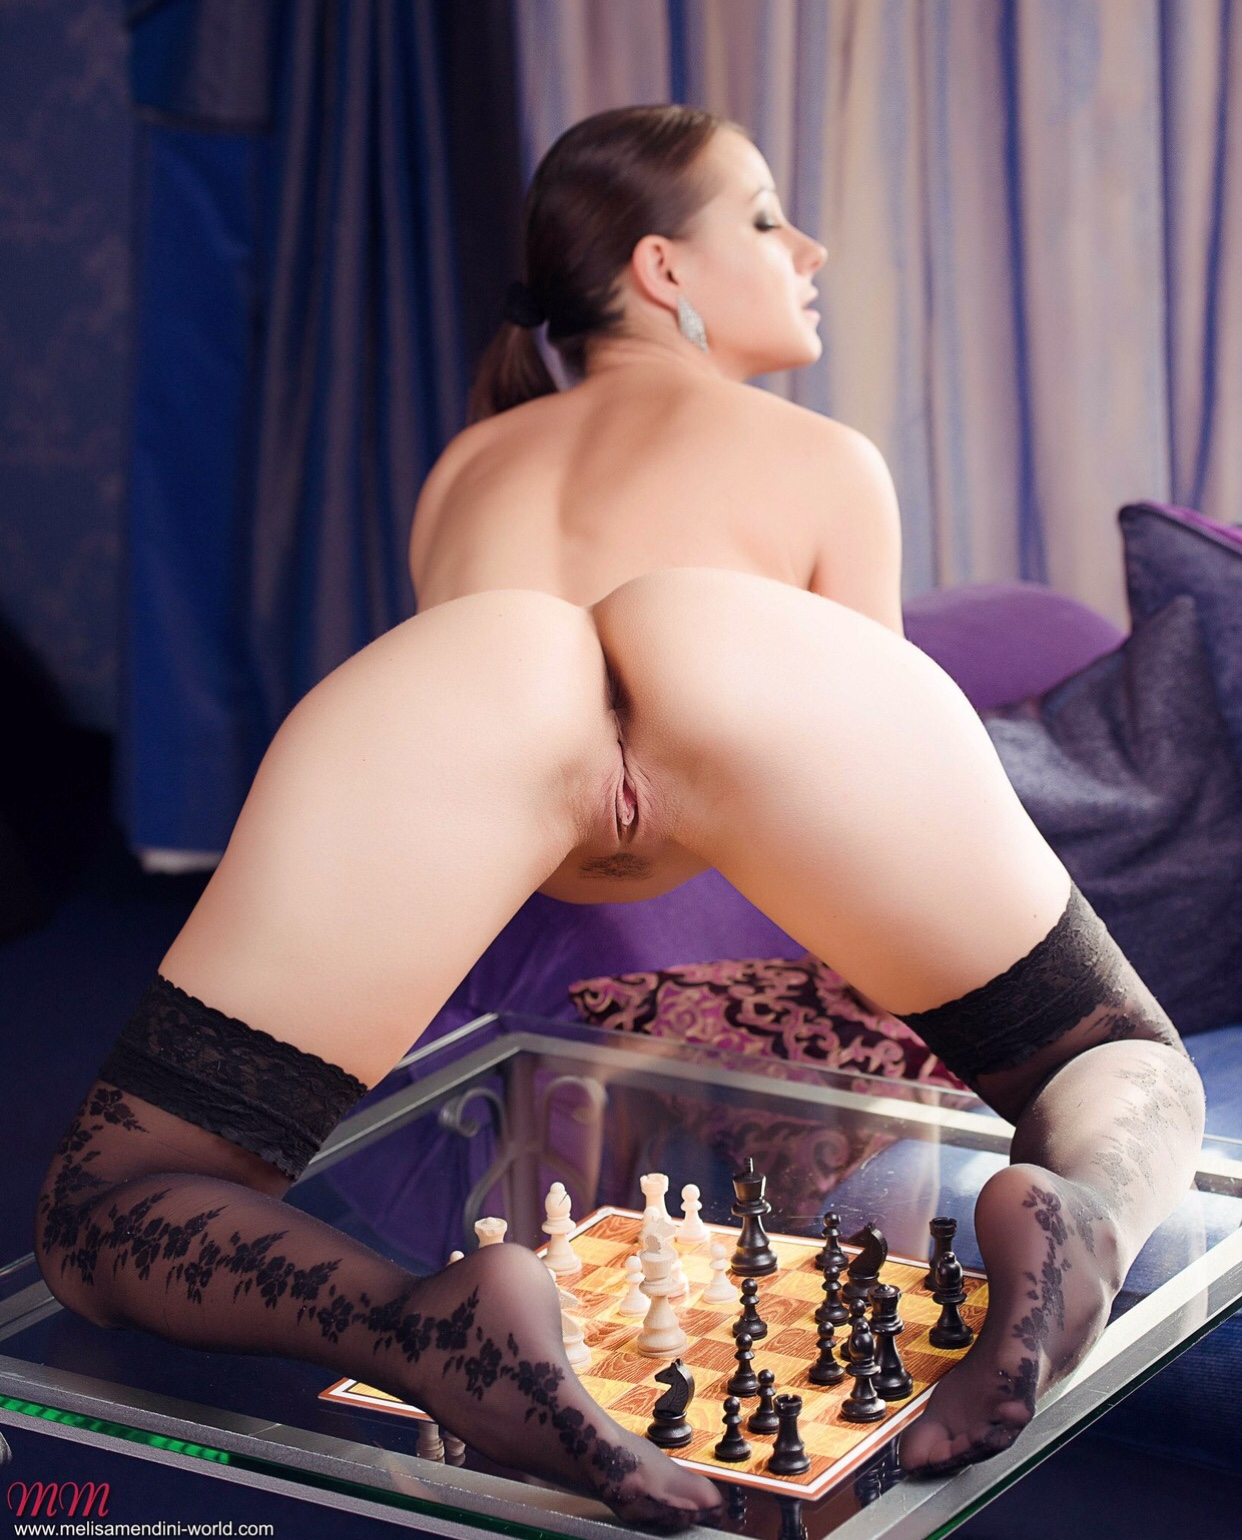 MMW chess game set stockings